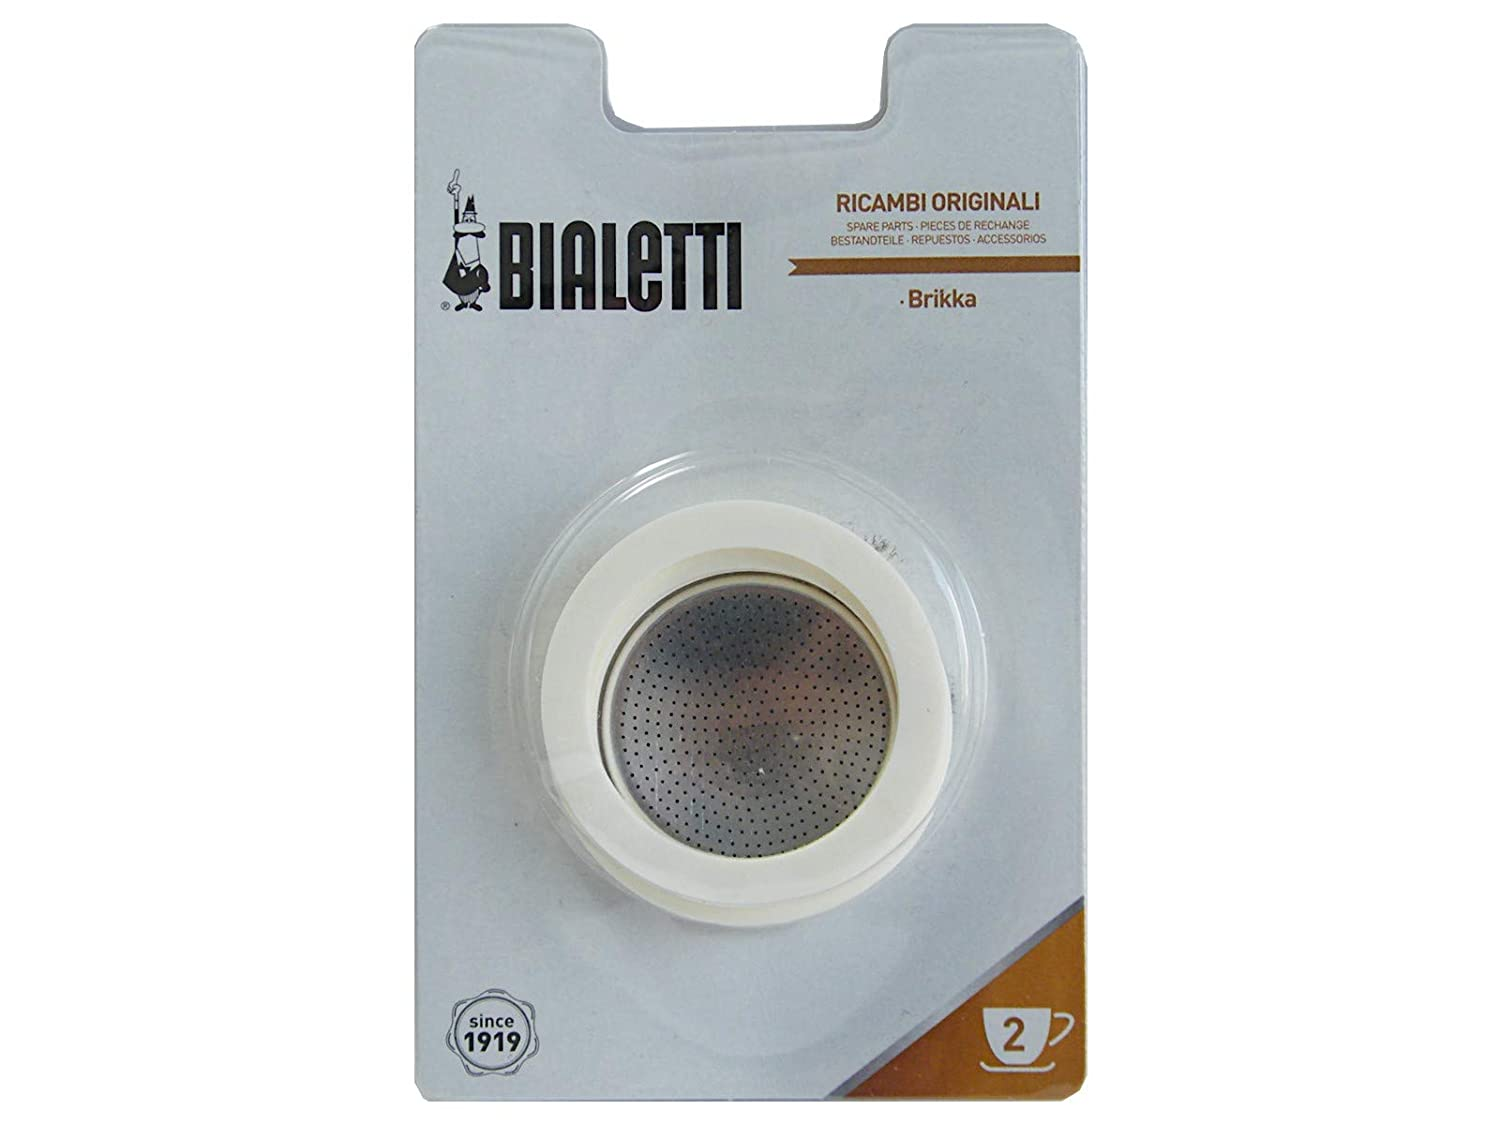 Bialetti - Brikka 2 Cup 3 Gaskets, Filter Plate Blister 0800013